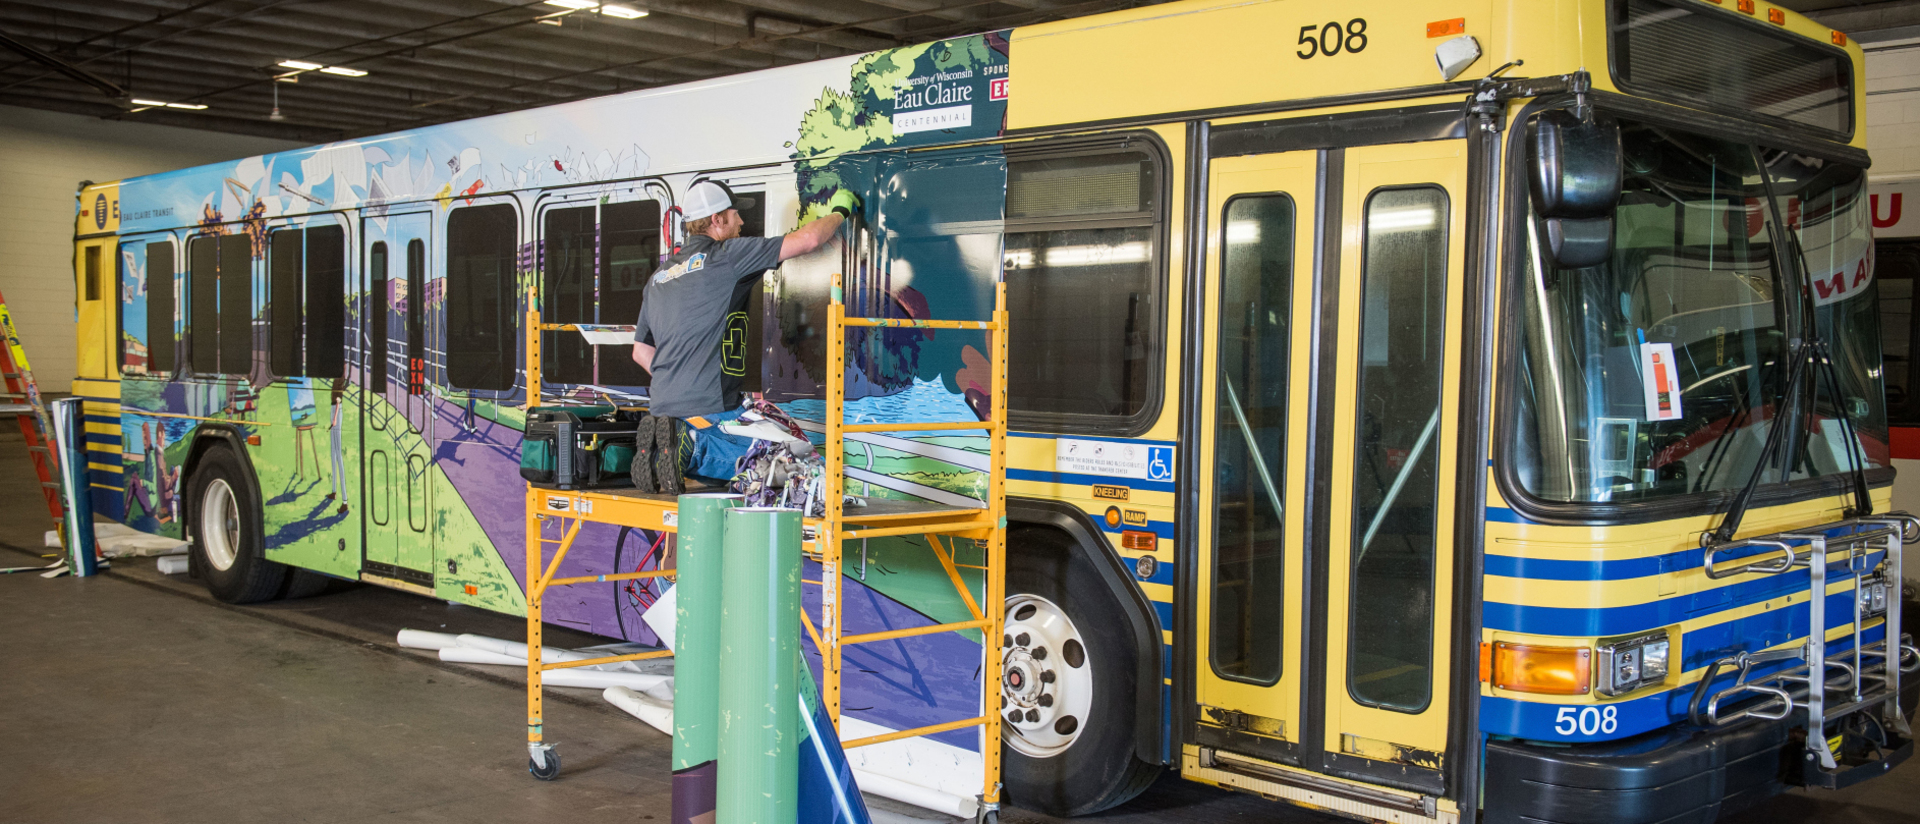 Centennial Celebration bus project